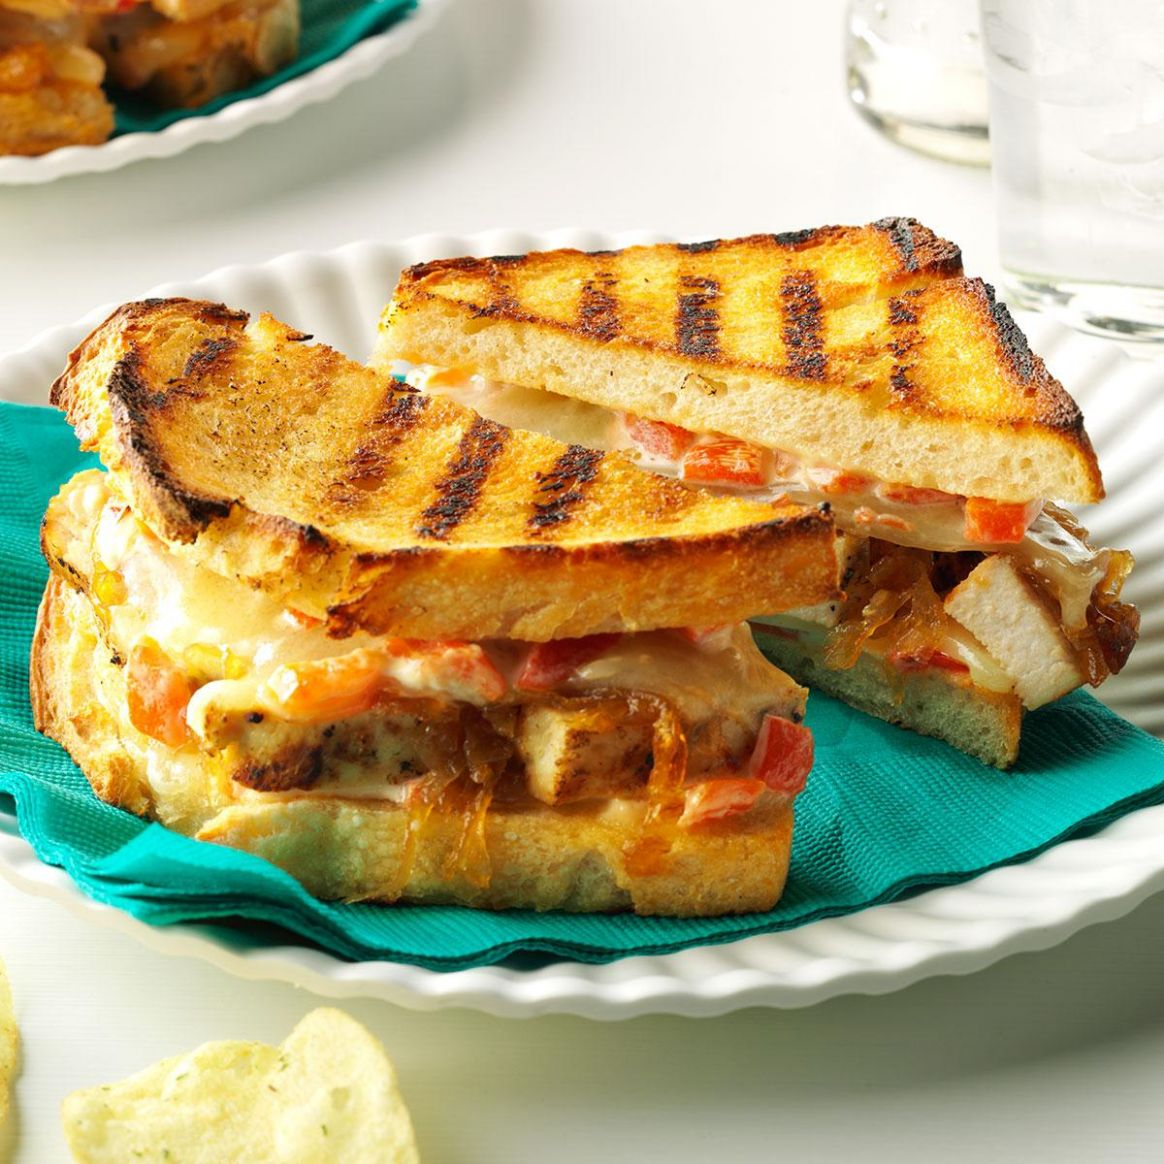 Chicken & Caramelized Onion Grilled Cheese - Sandwich Recipes Grilled Cheese